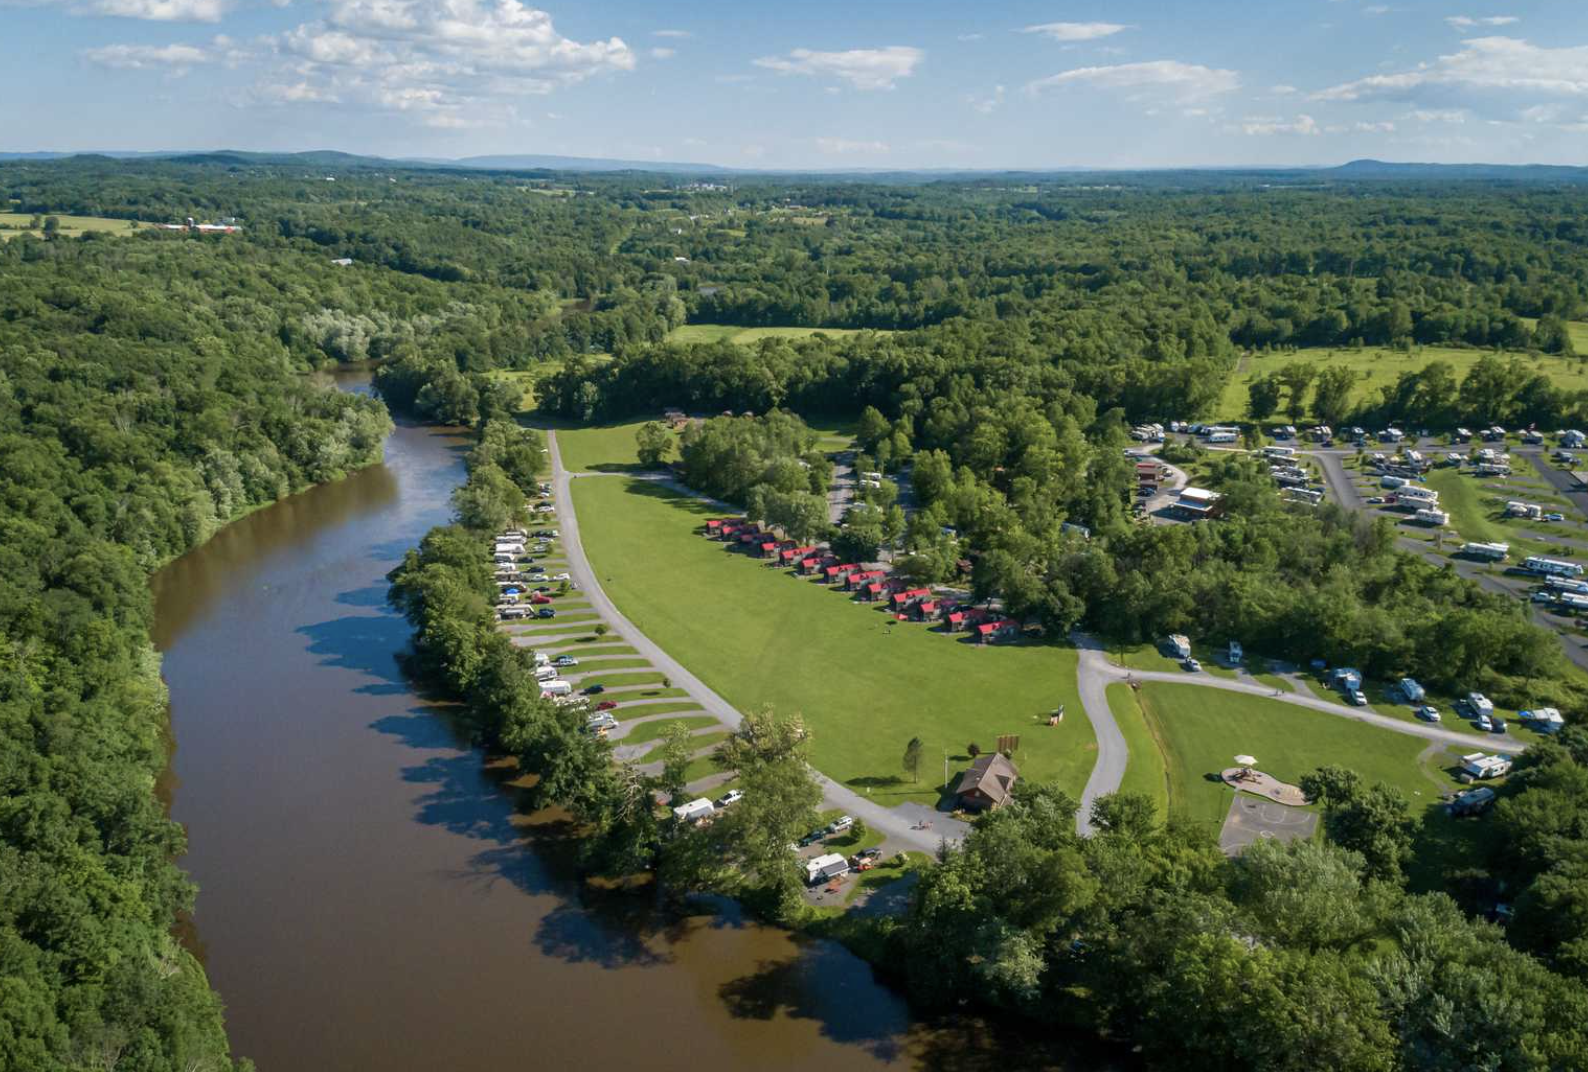 Aerial view of campground next to river with RVs and cabins in the distance